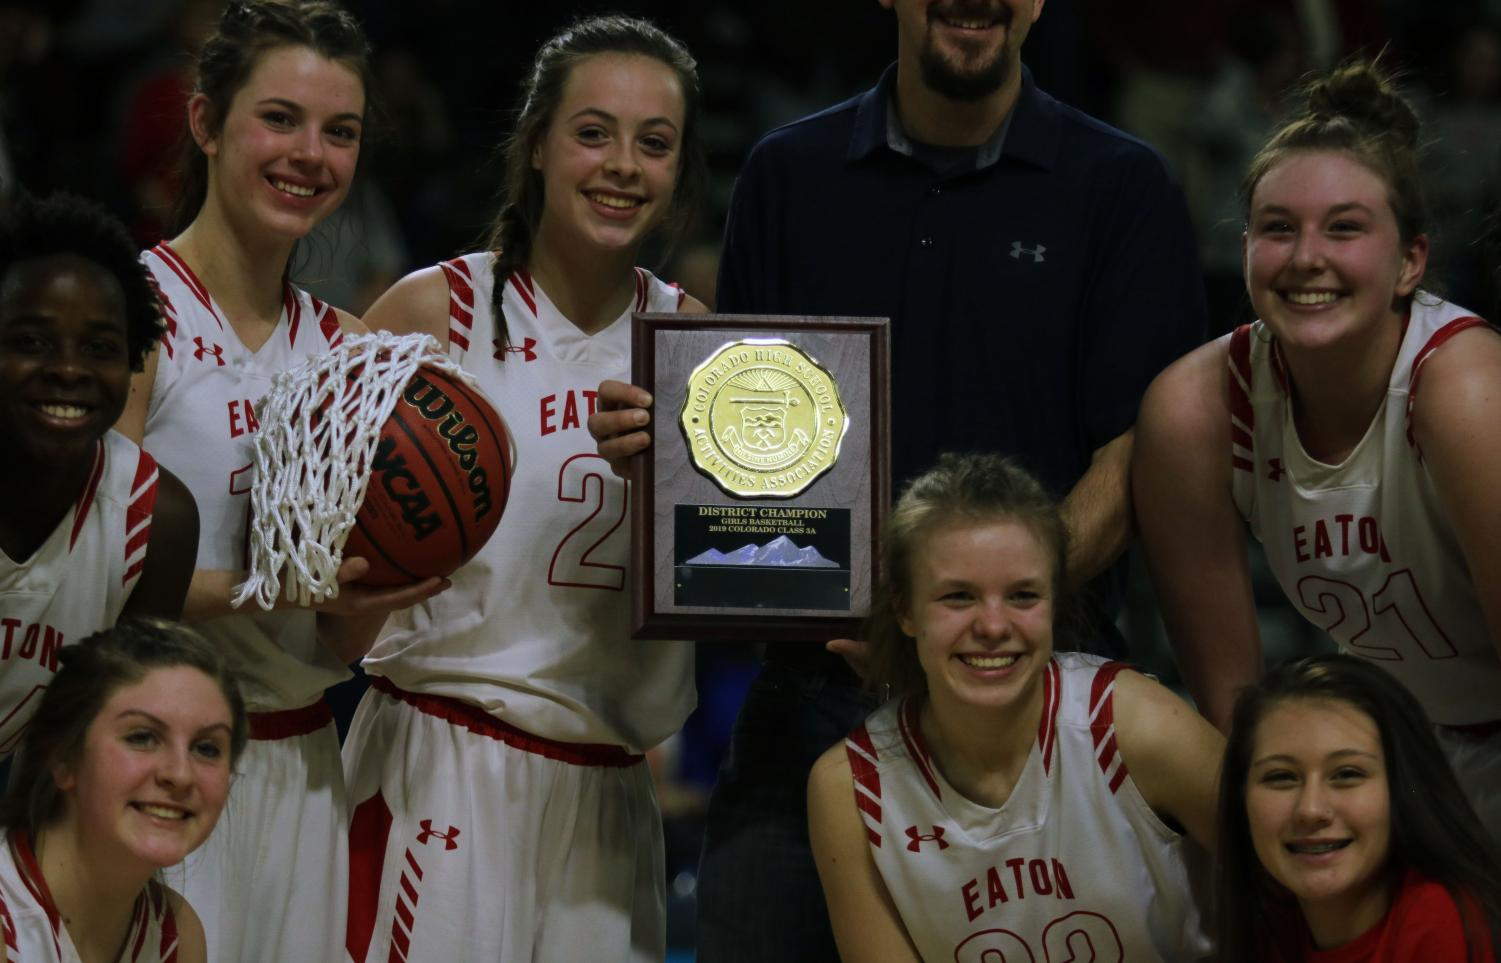 Moments after the district championship win, teammates Addie Randel, Nakaiya Kuskie, Gracie Schrebier, Bailie Duncan, Michaela Hill, Sydney Booth, and Anya Womack gather around the plaque.